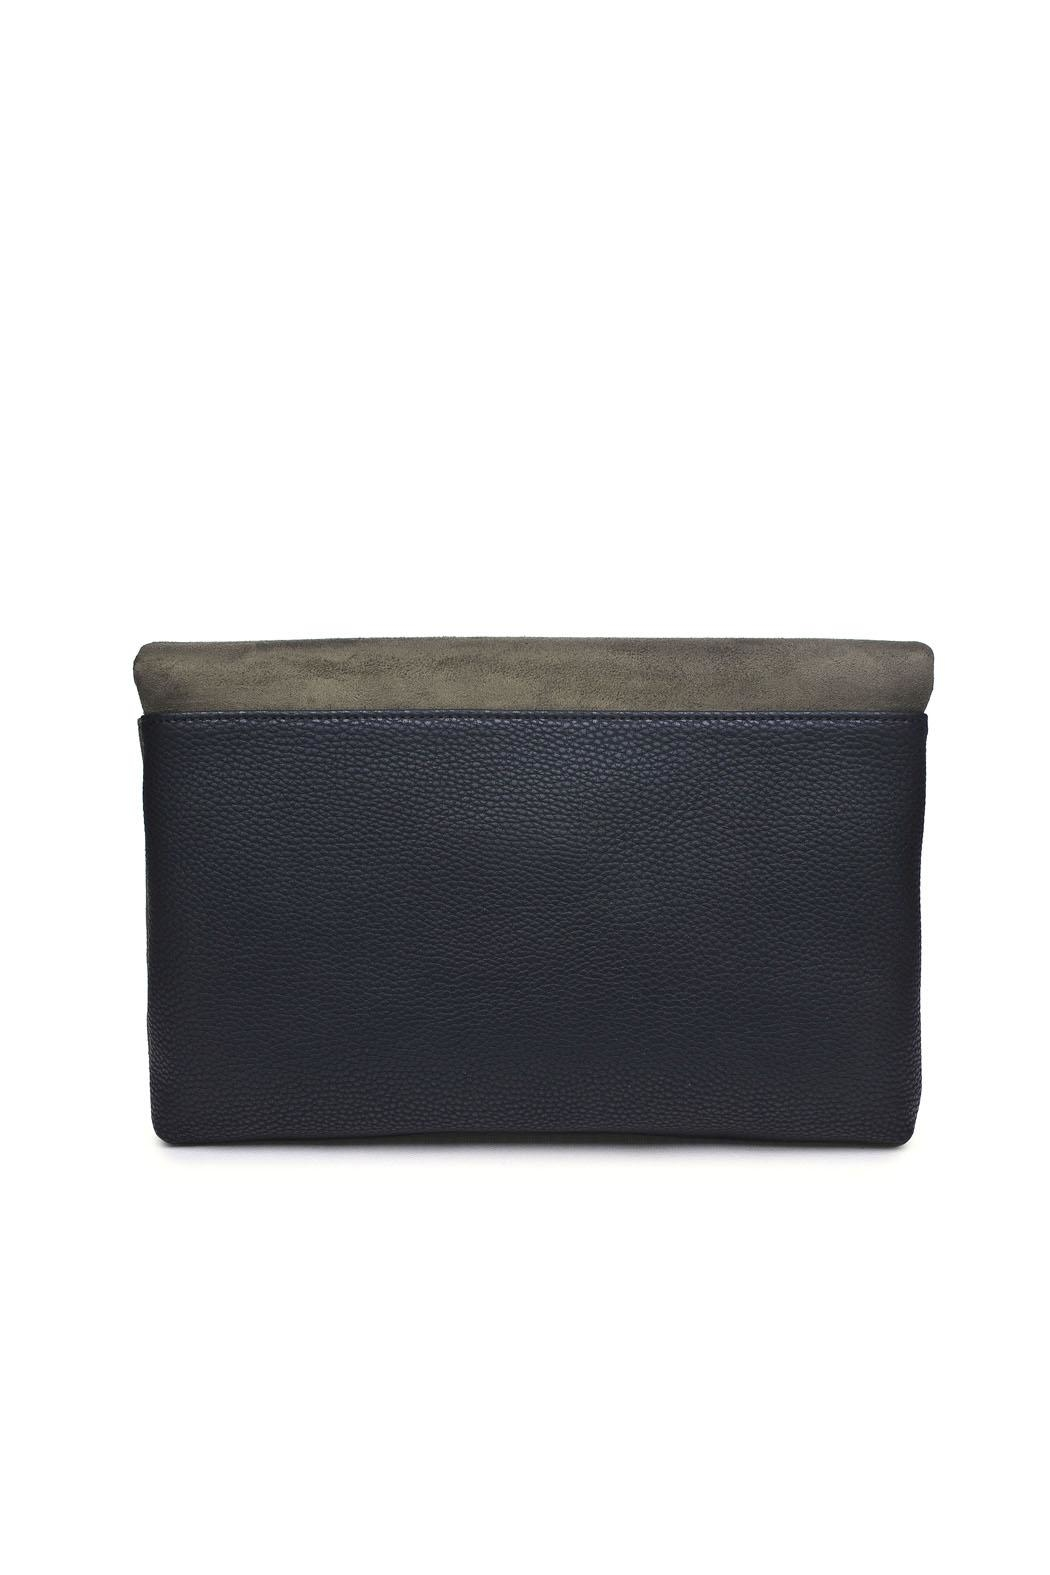 Urban Expressions Suede Foldover Clutch - Side Cropped Image